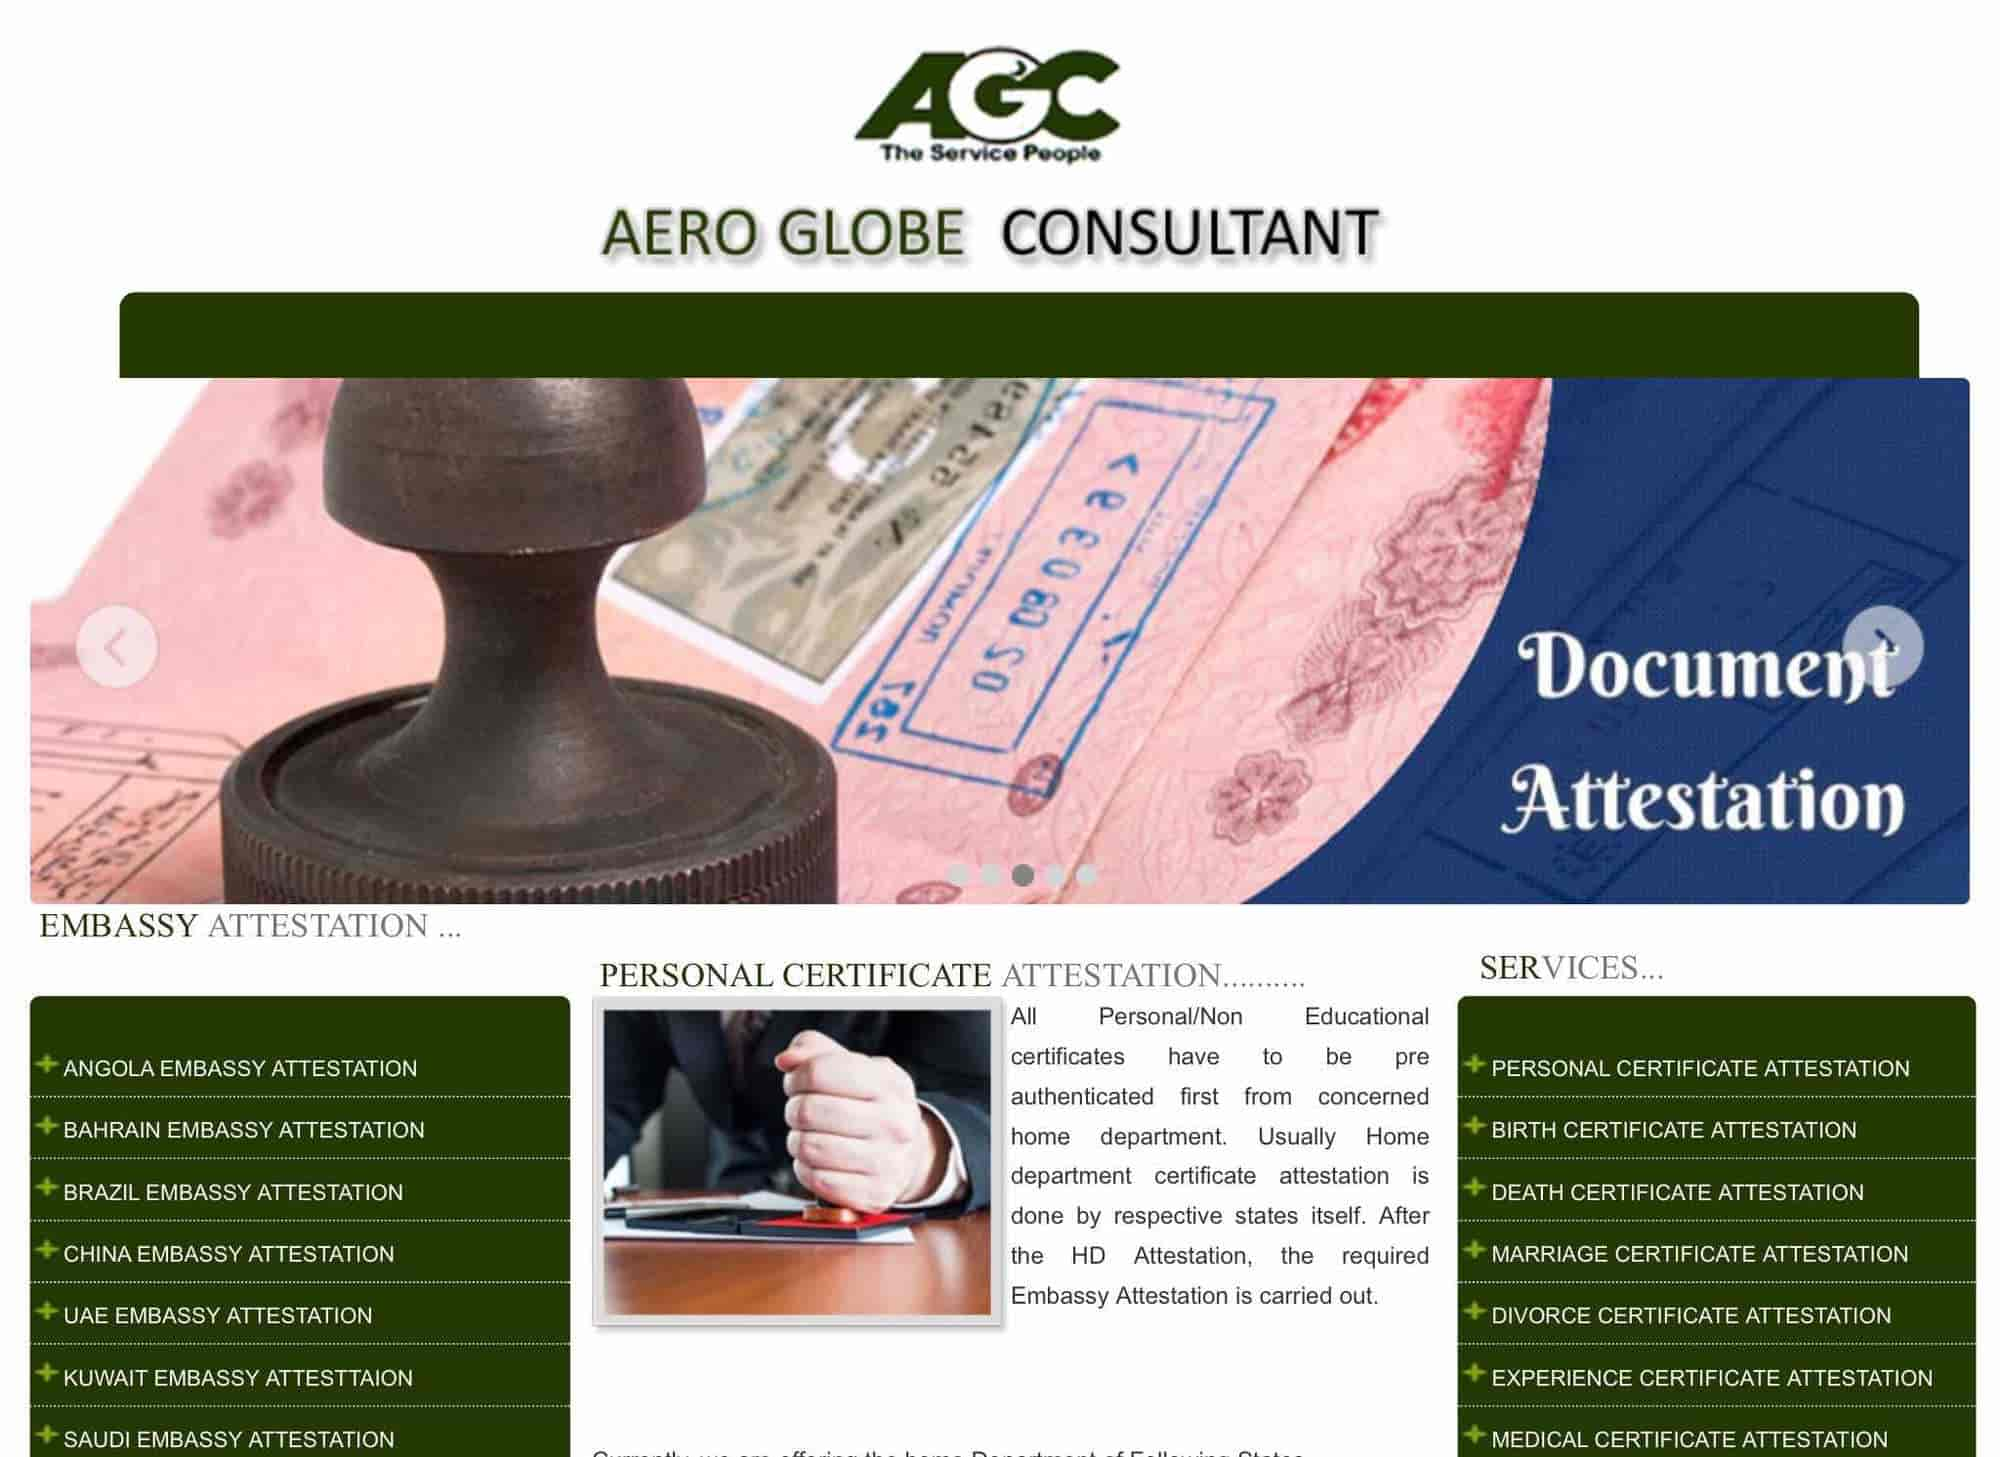 Aero Globe Travels, Mount Road - Attestation Services in